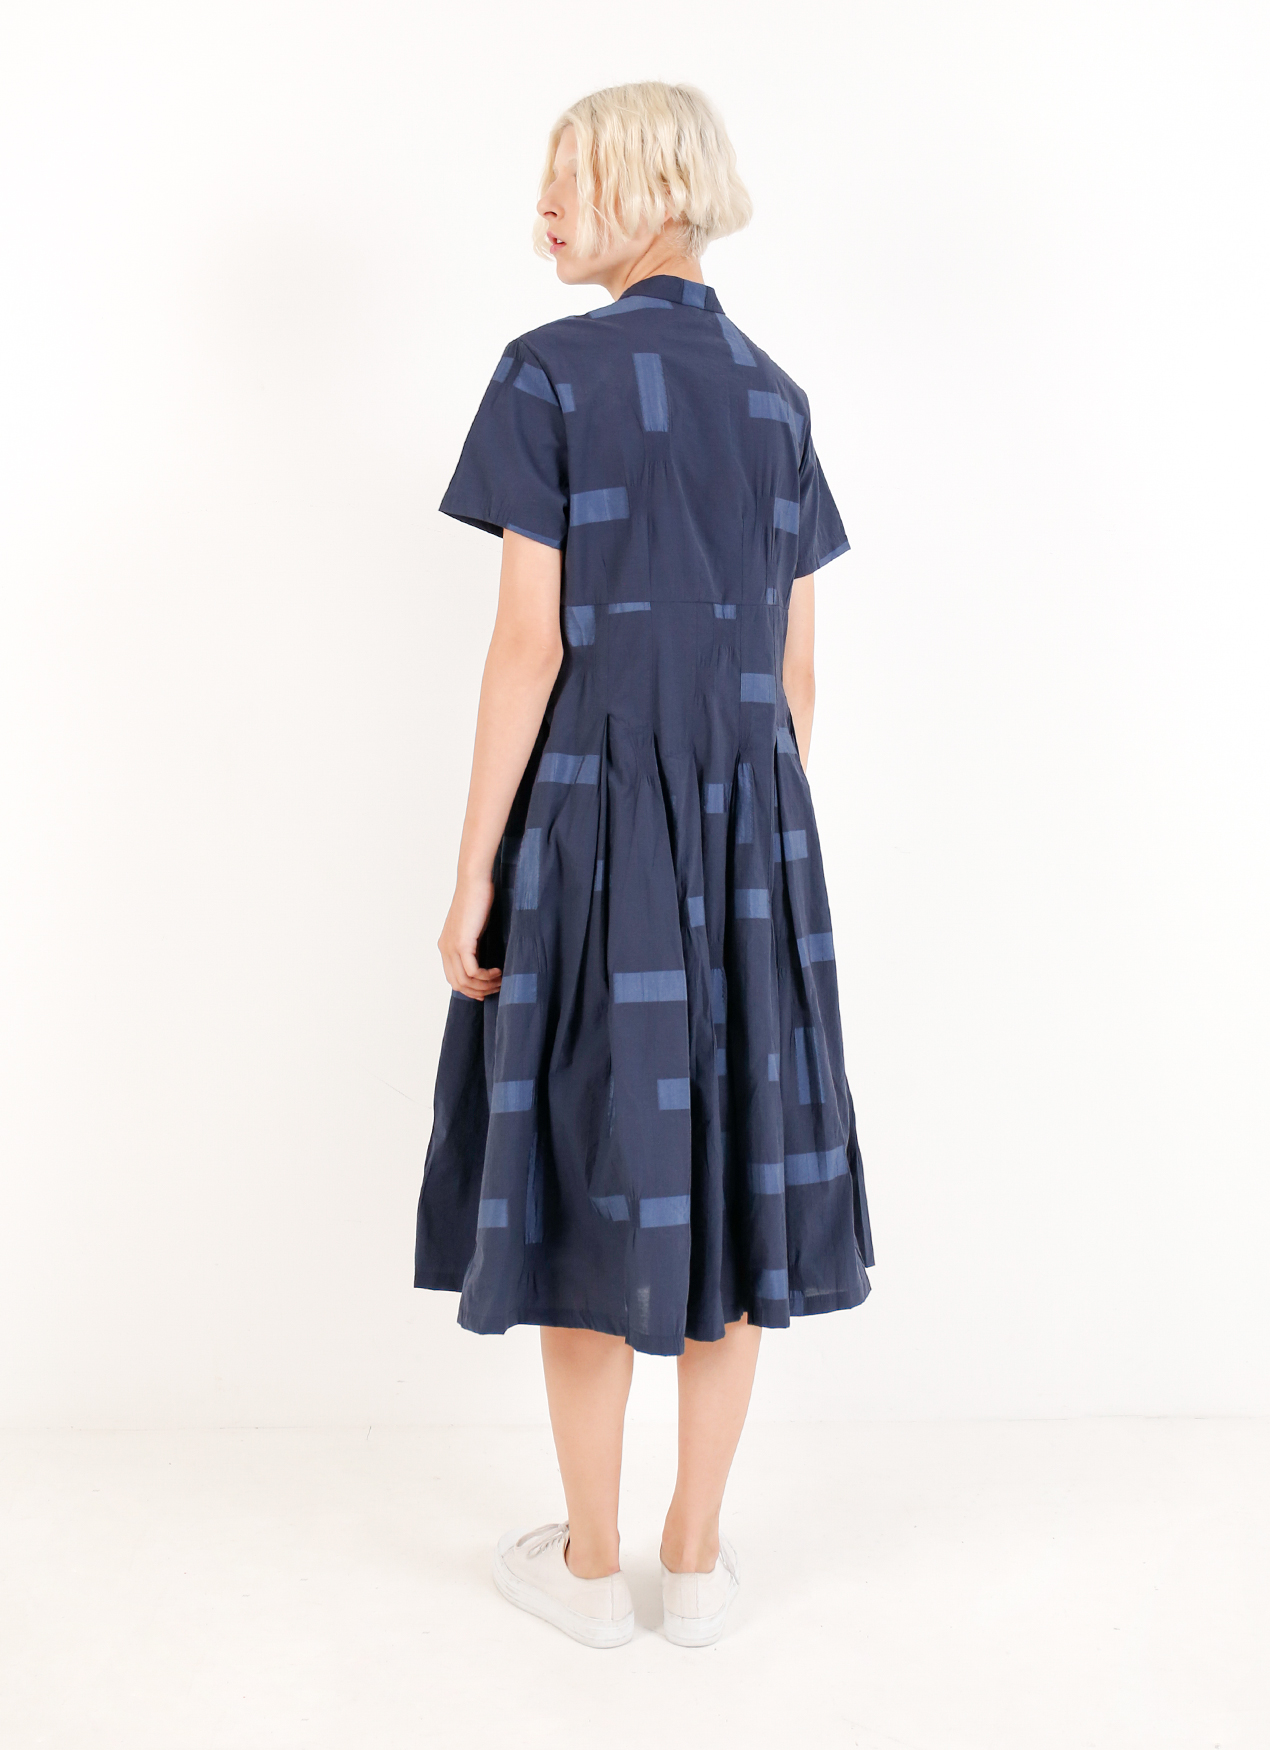 BOWN Janel Dress - Blue